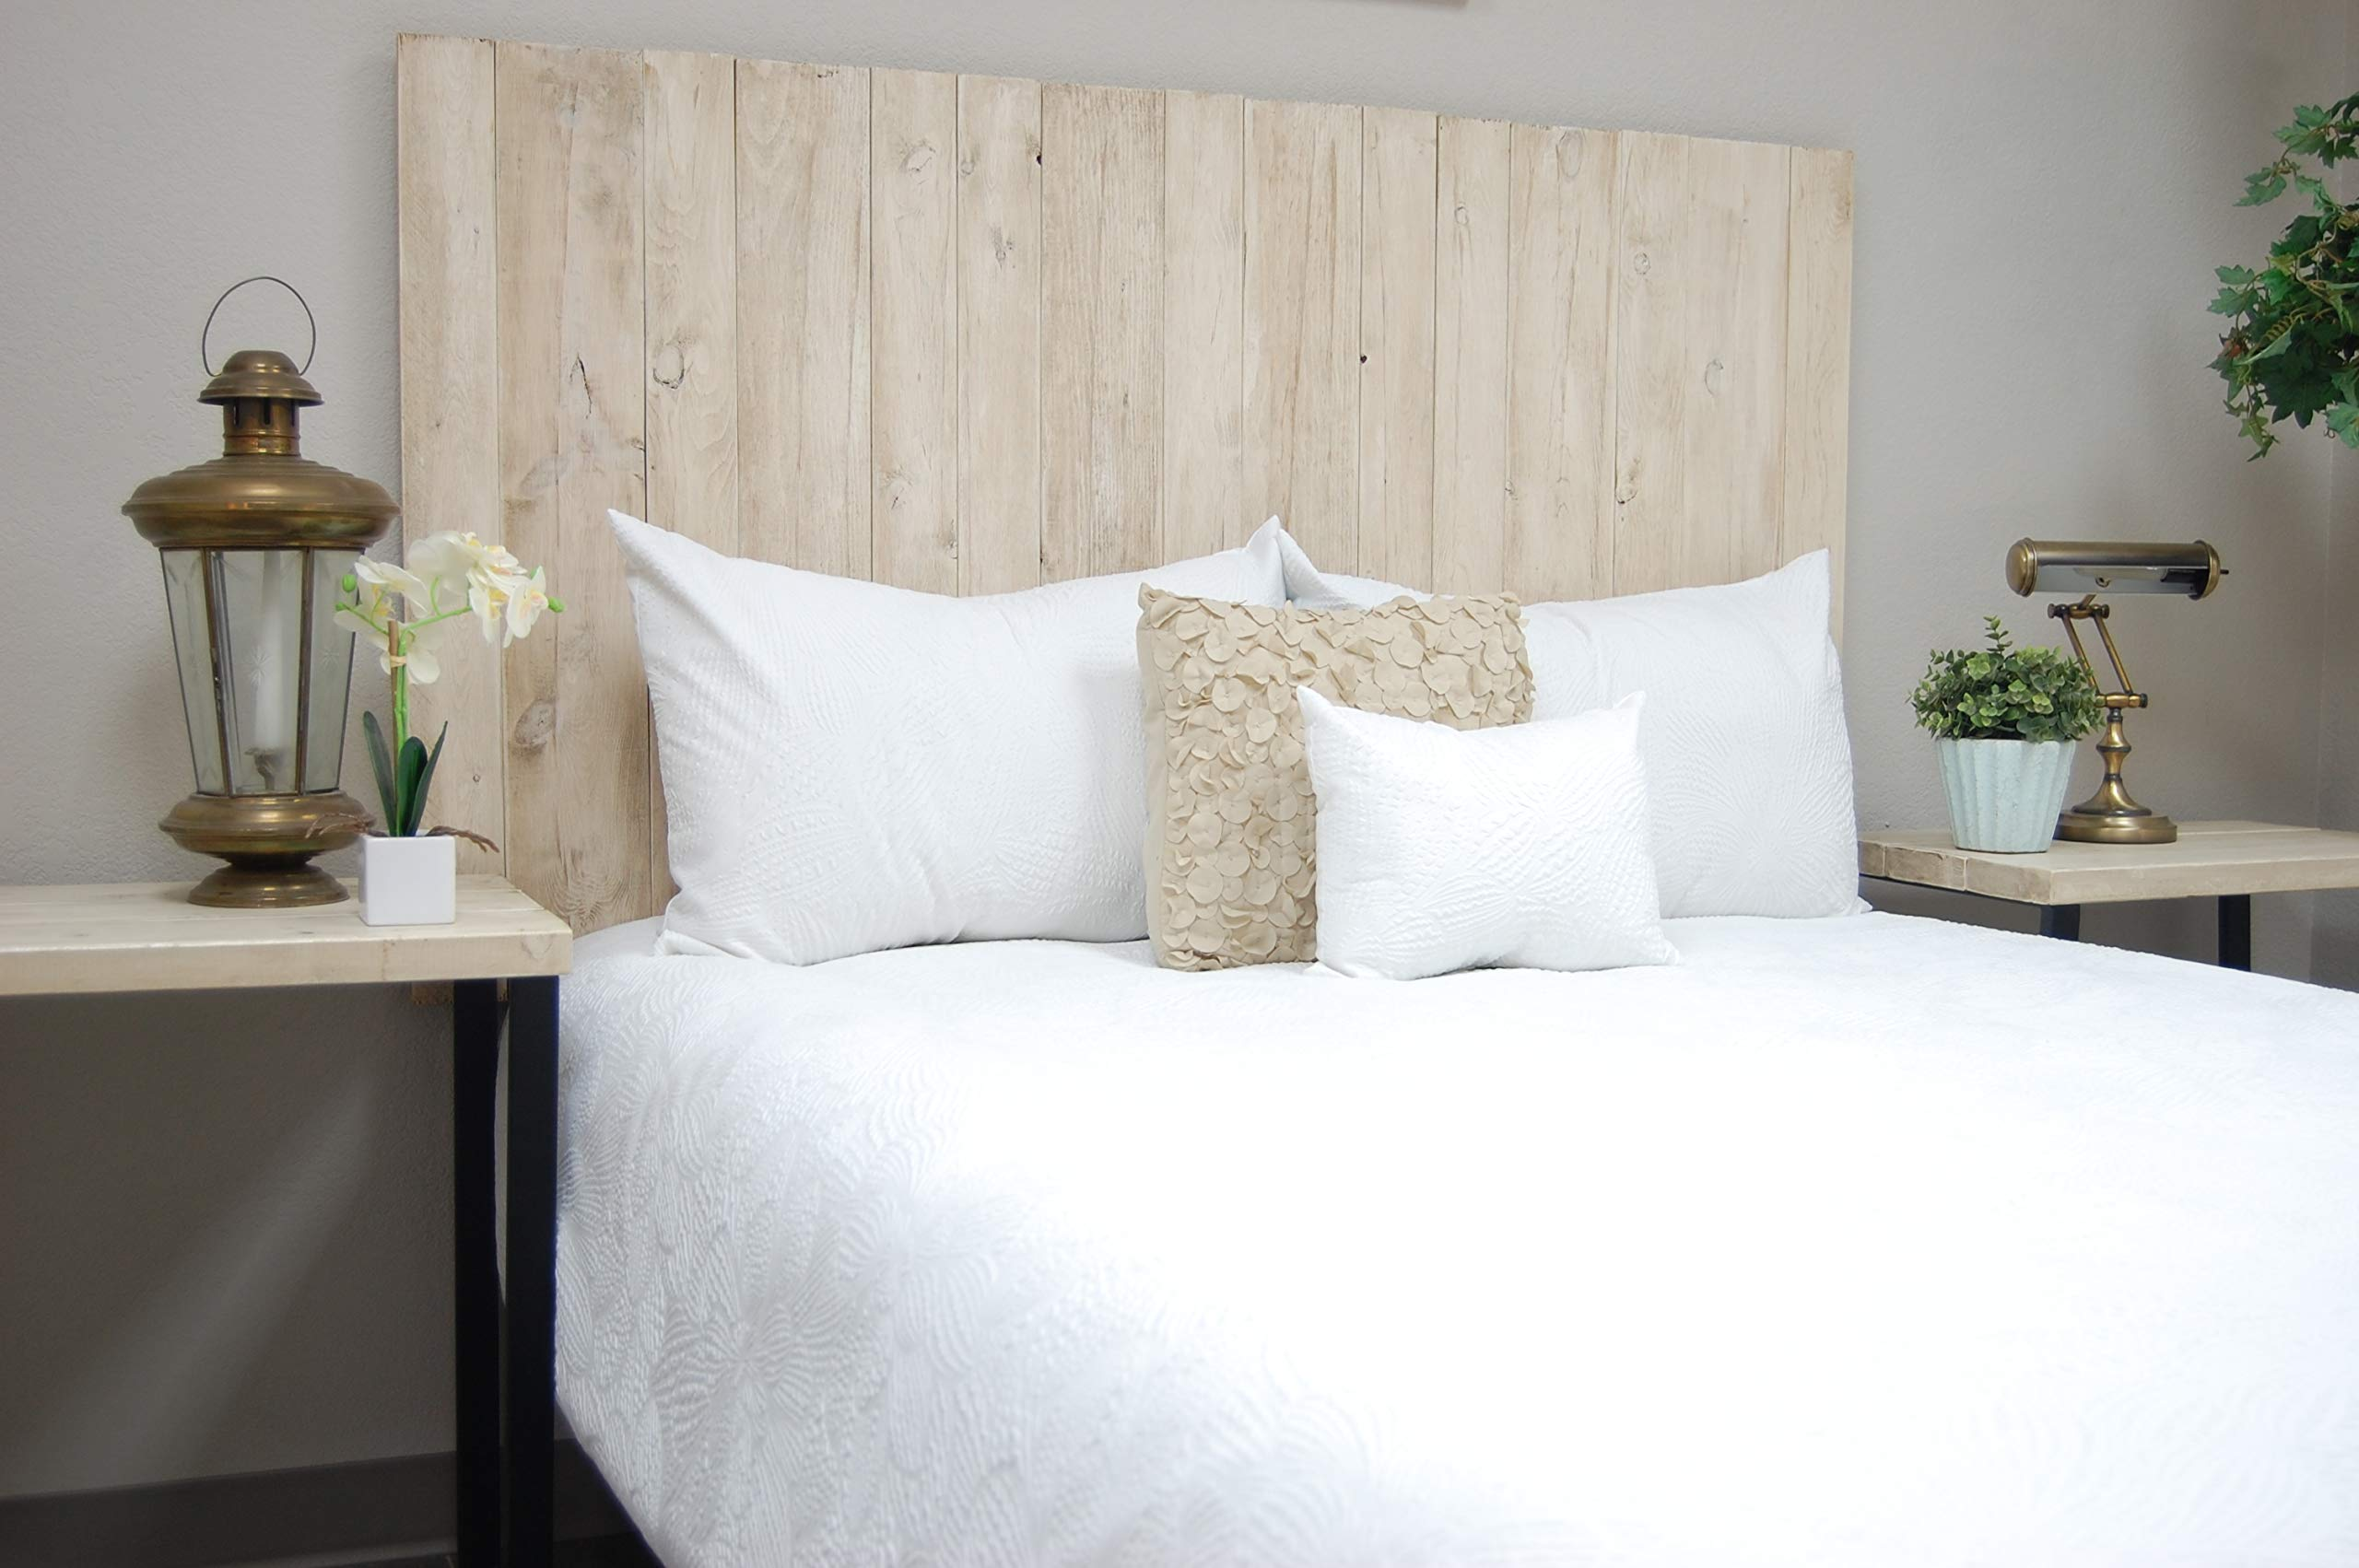 Antique White Headboard Full Size Weathered, Hanger Style, Handcrafted. Mounts on Wall. Easy Installation by Barn Walls